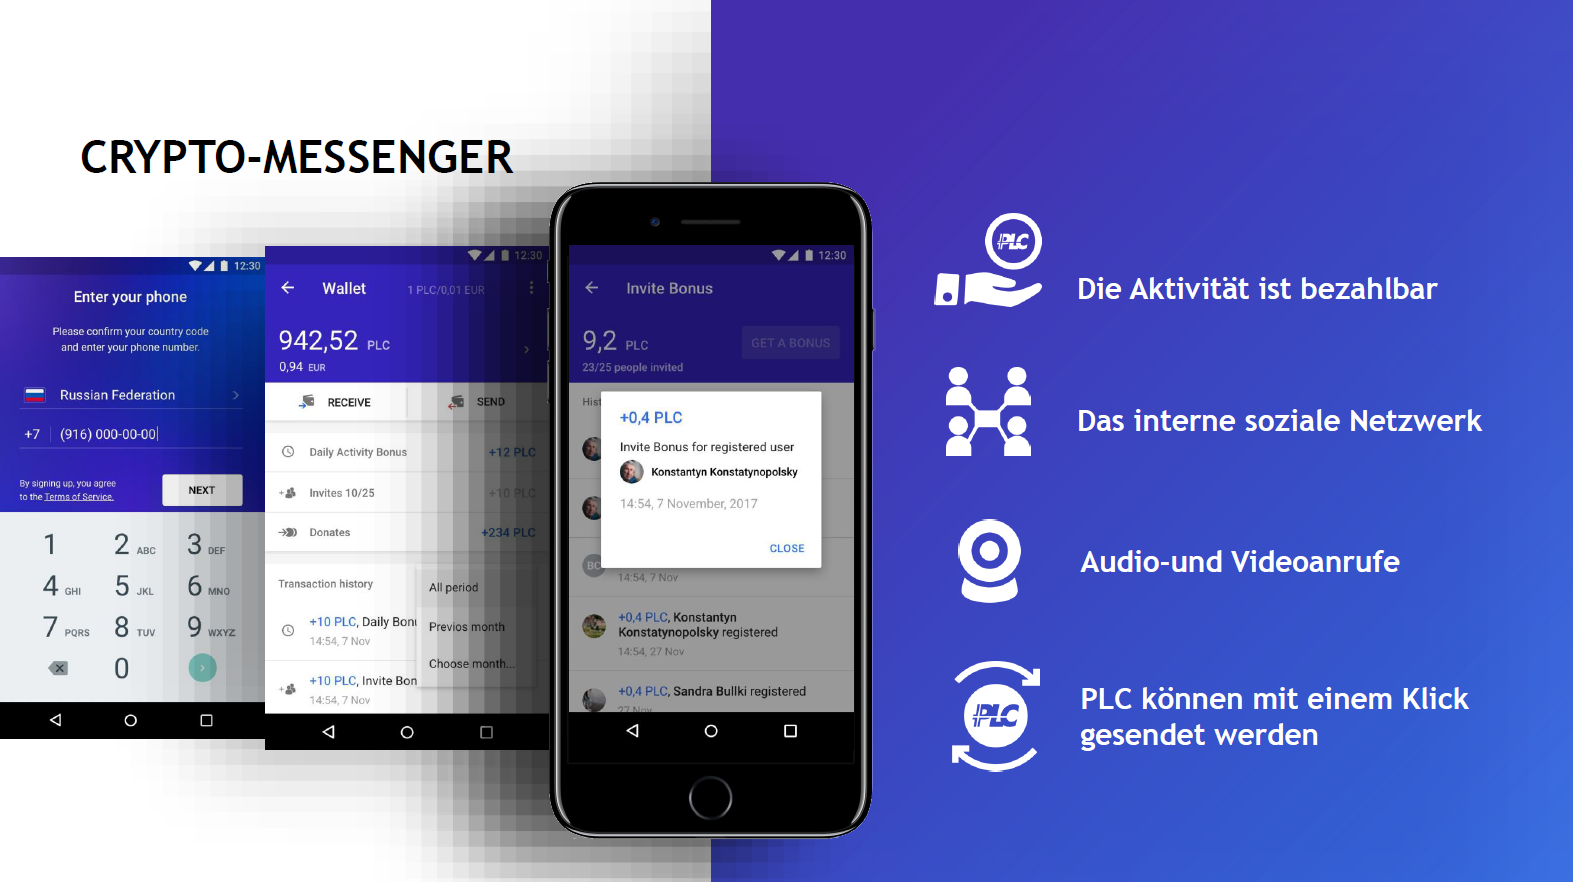 Crypto-Messanger